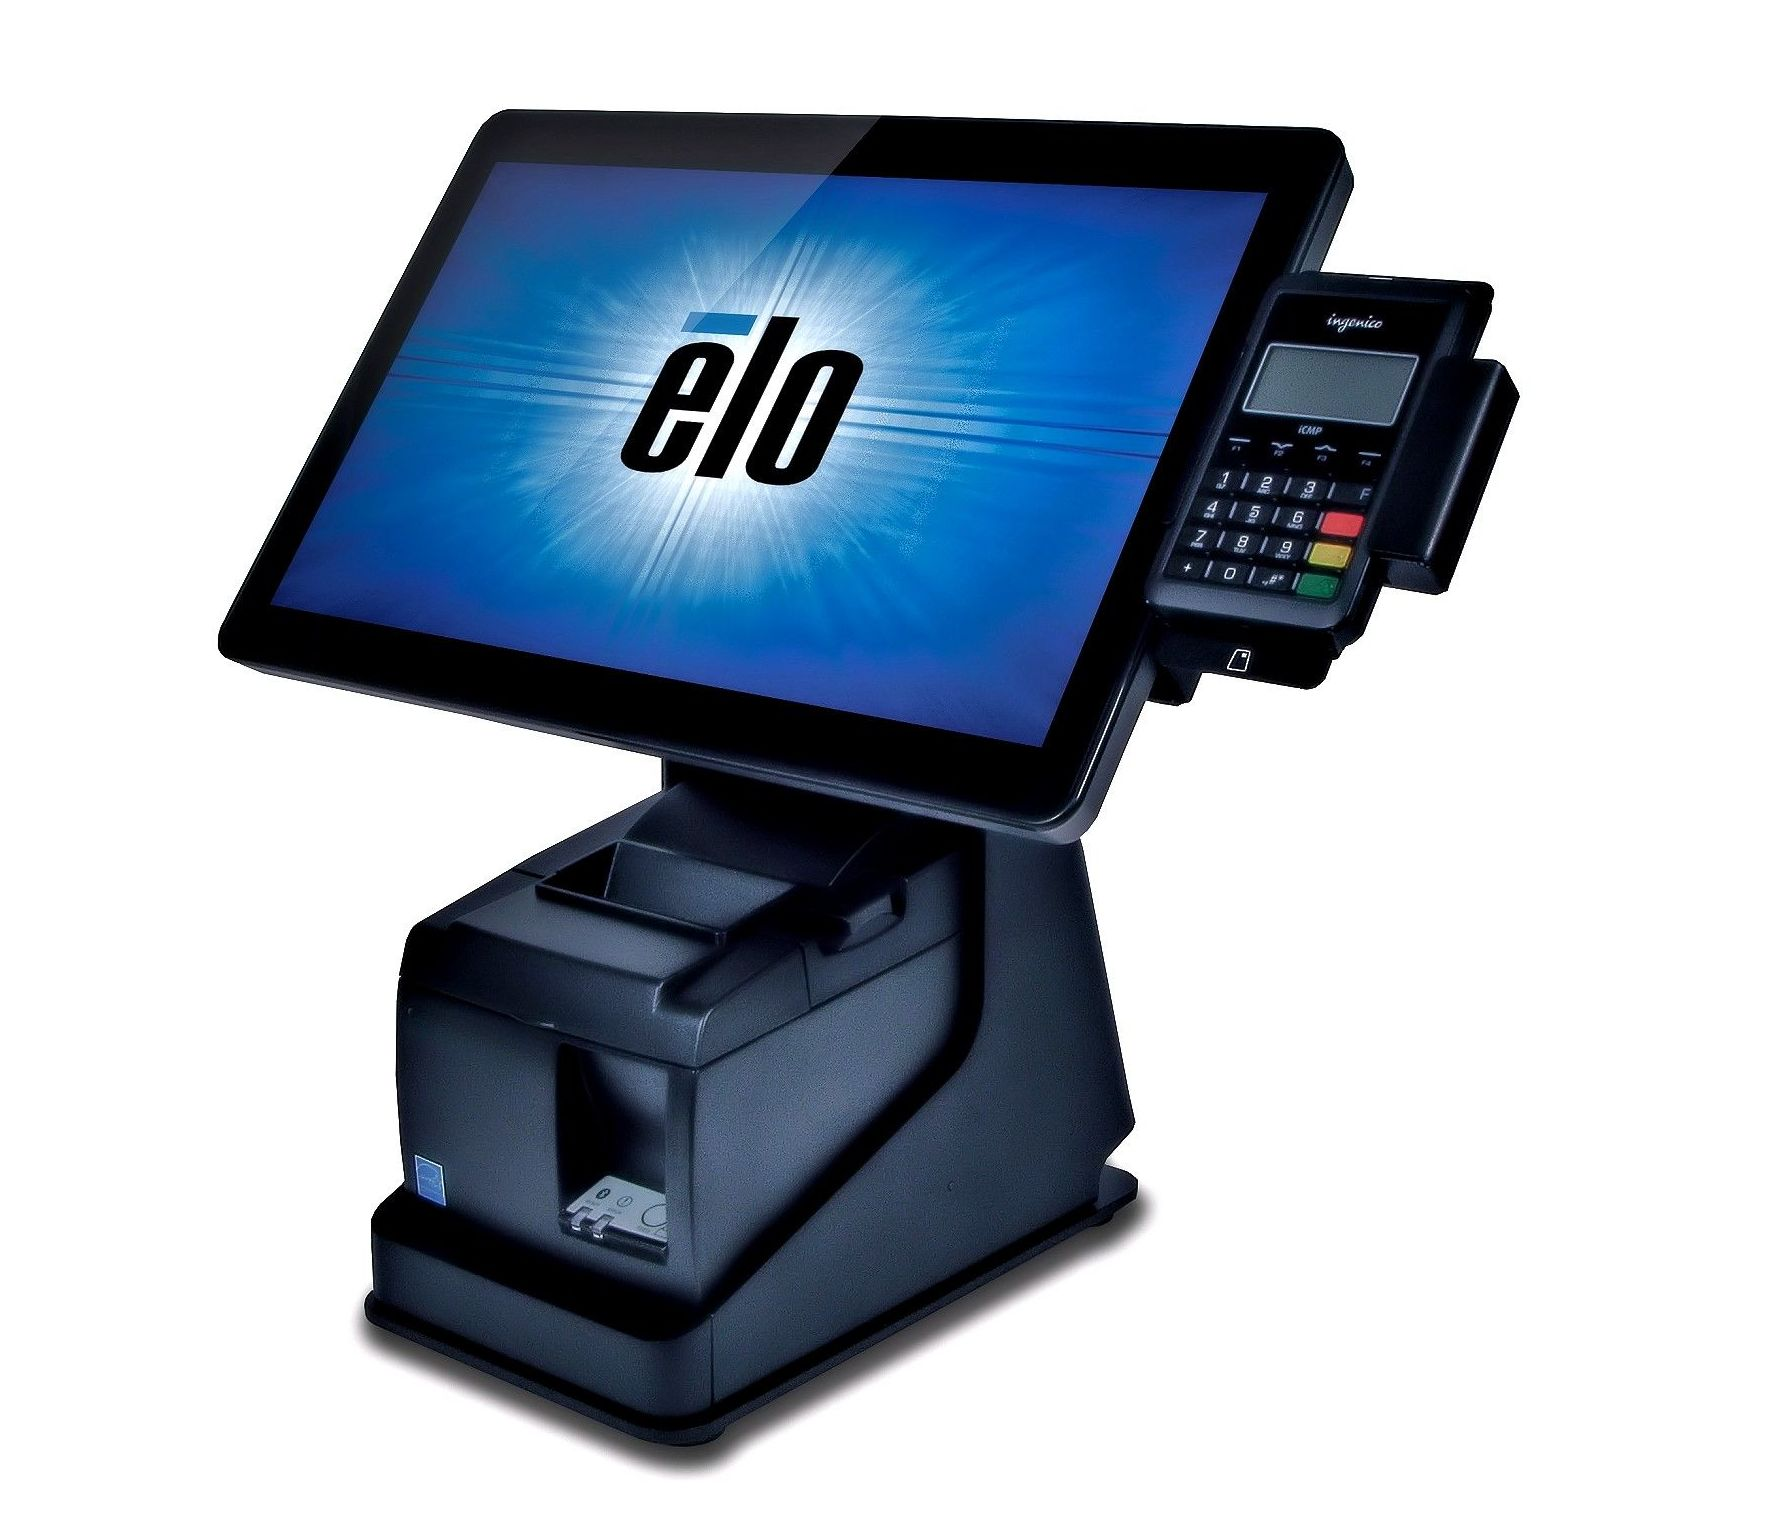 ELO TouchScreen Solutions: Monitors and Computers: Productos y Servicios de  S T G L O B A L }}